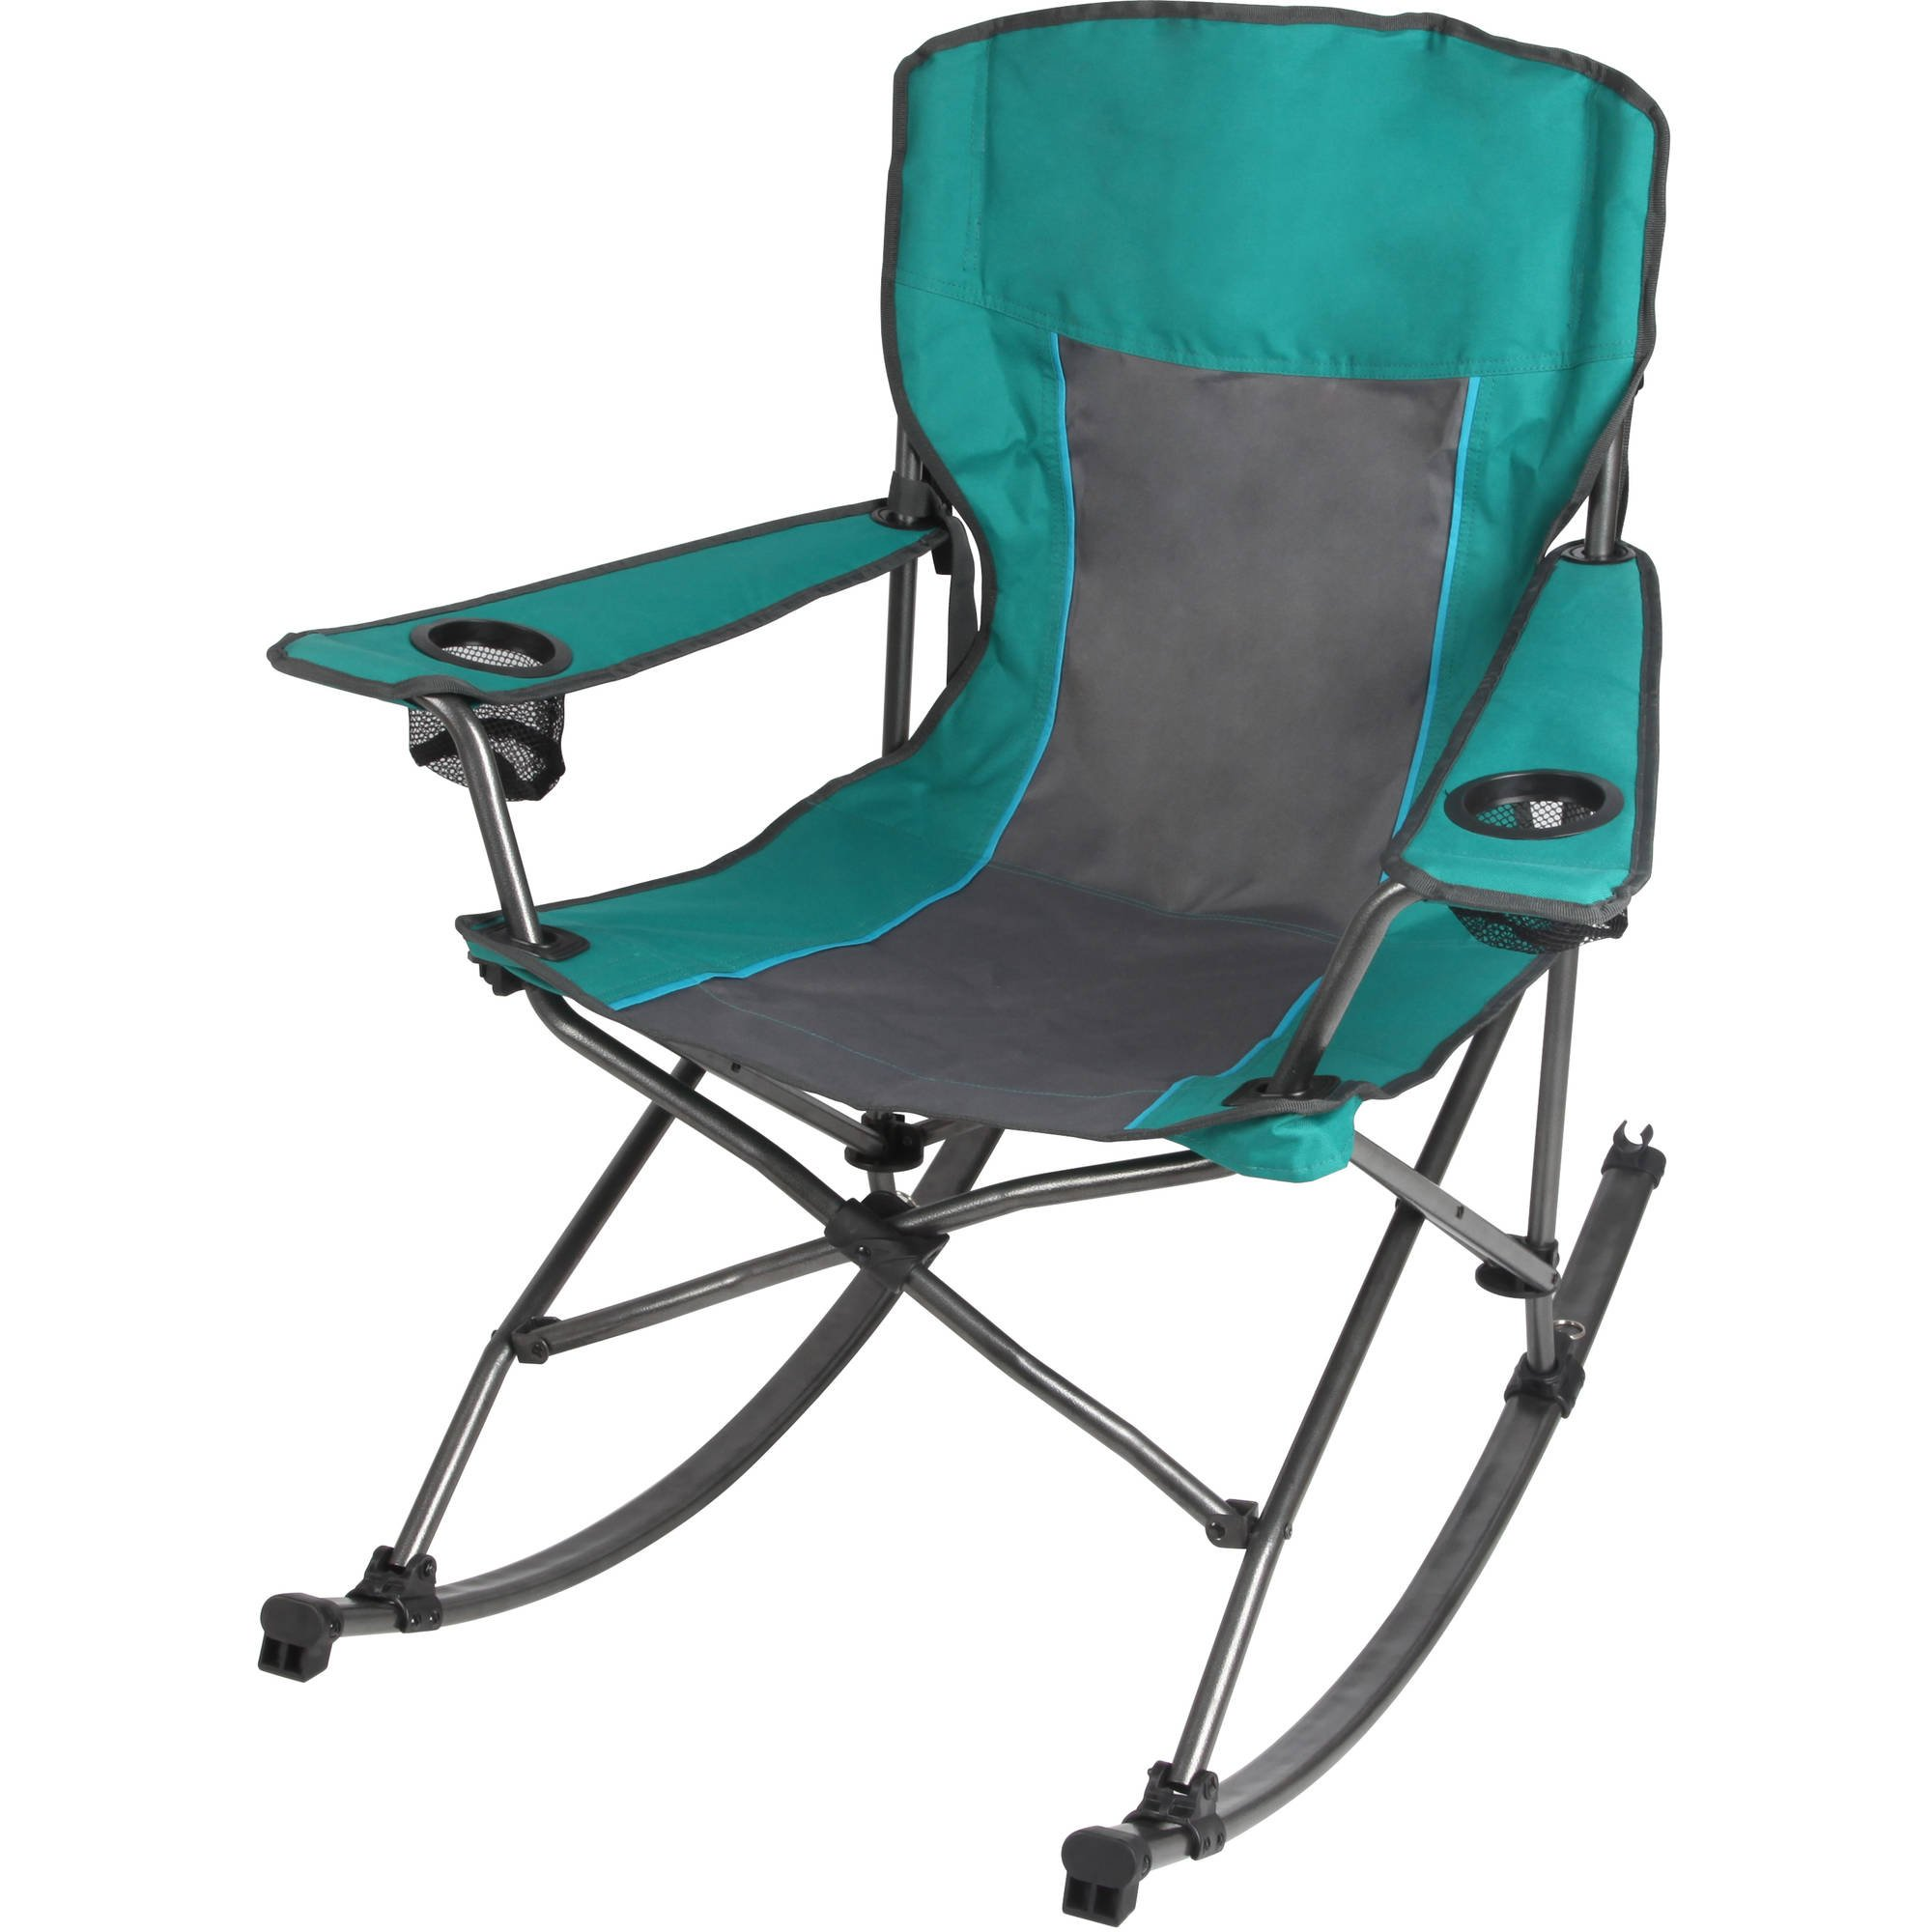 Ozark Trail Quad Fold Rocking Camp Chair with Cup Holders, Green (L x W x H) 32.80 x 38.20 x 38.20 Inches by Camp Chair.